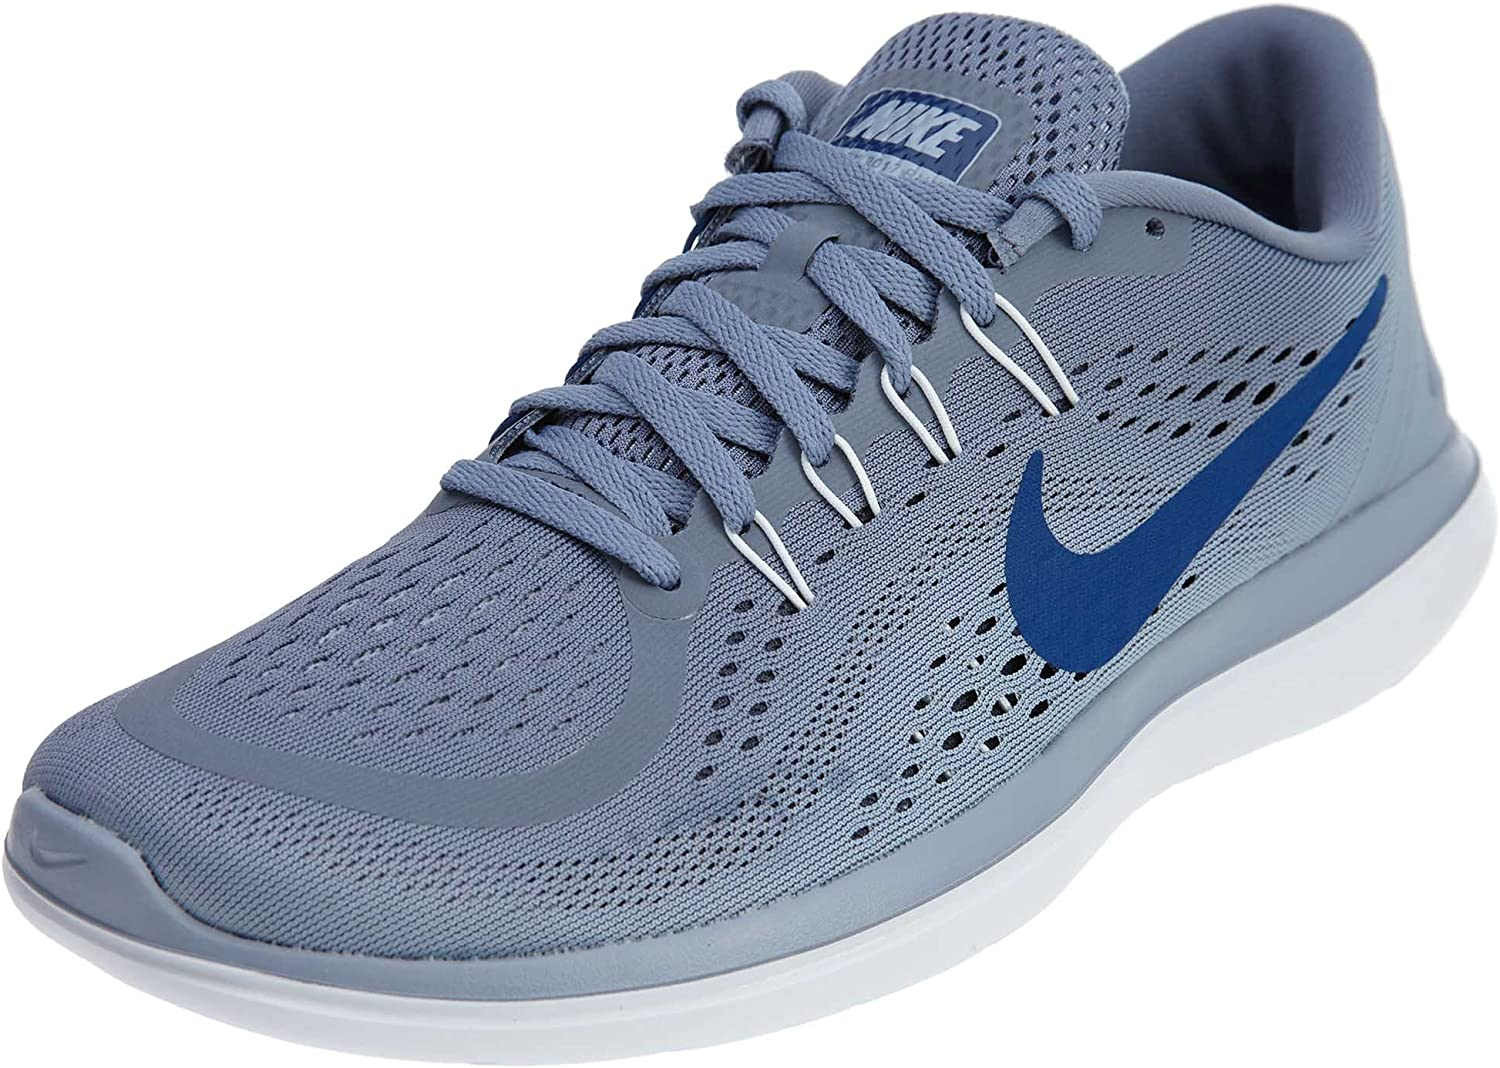 Nike Men s Flex RN 2017 Running Shoe Dark Sky Blue Gym Blue Glacier Grey Size